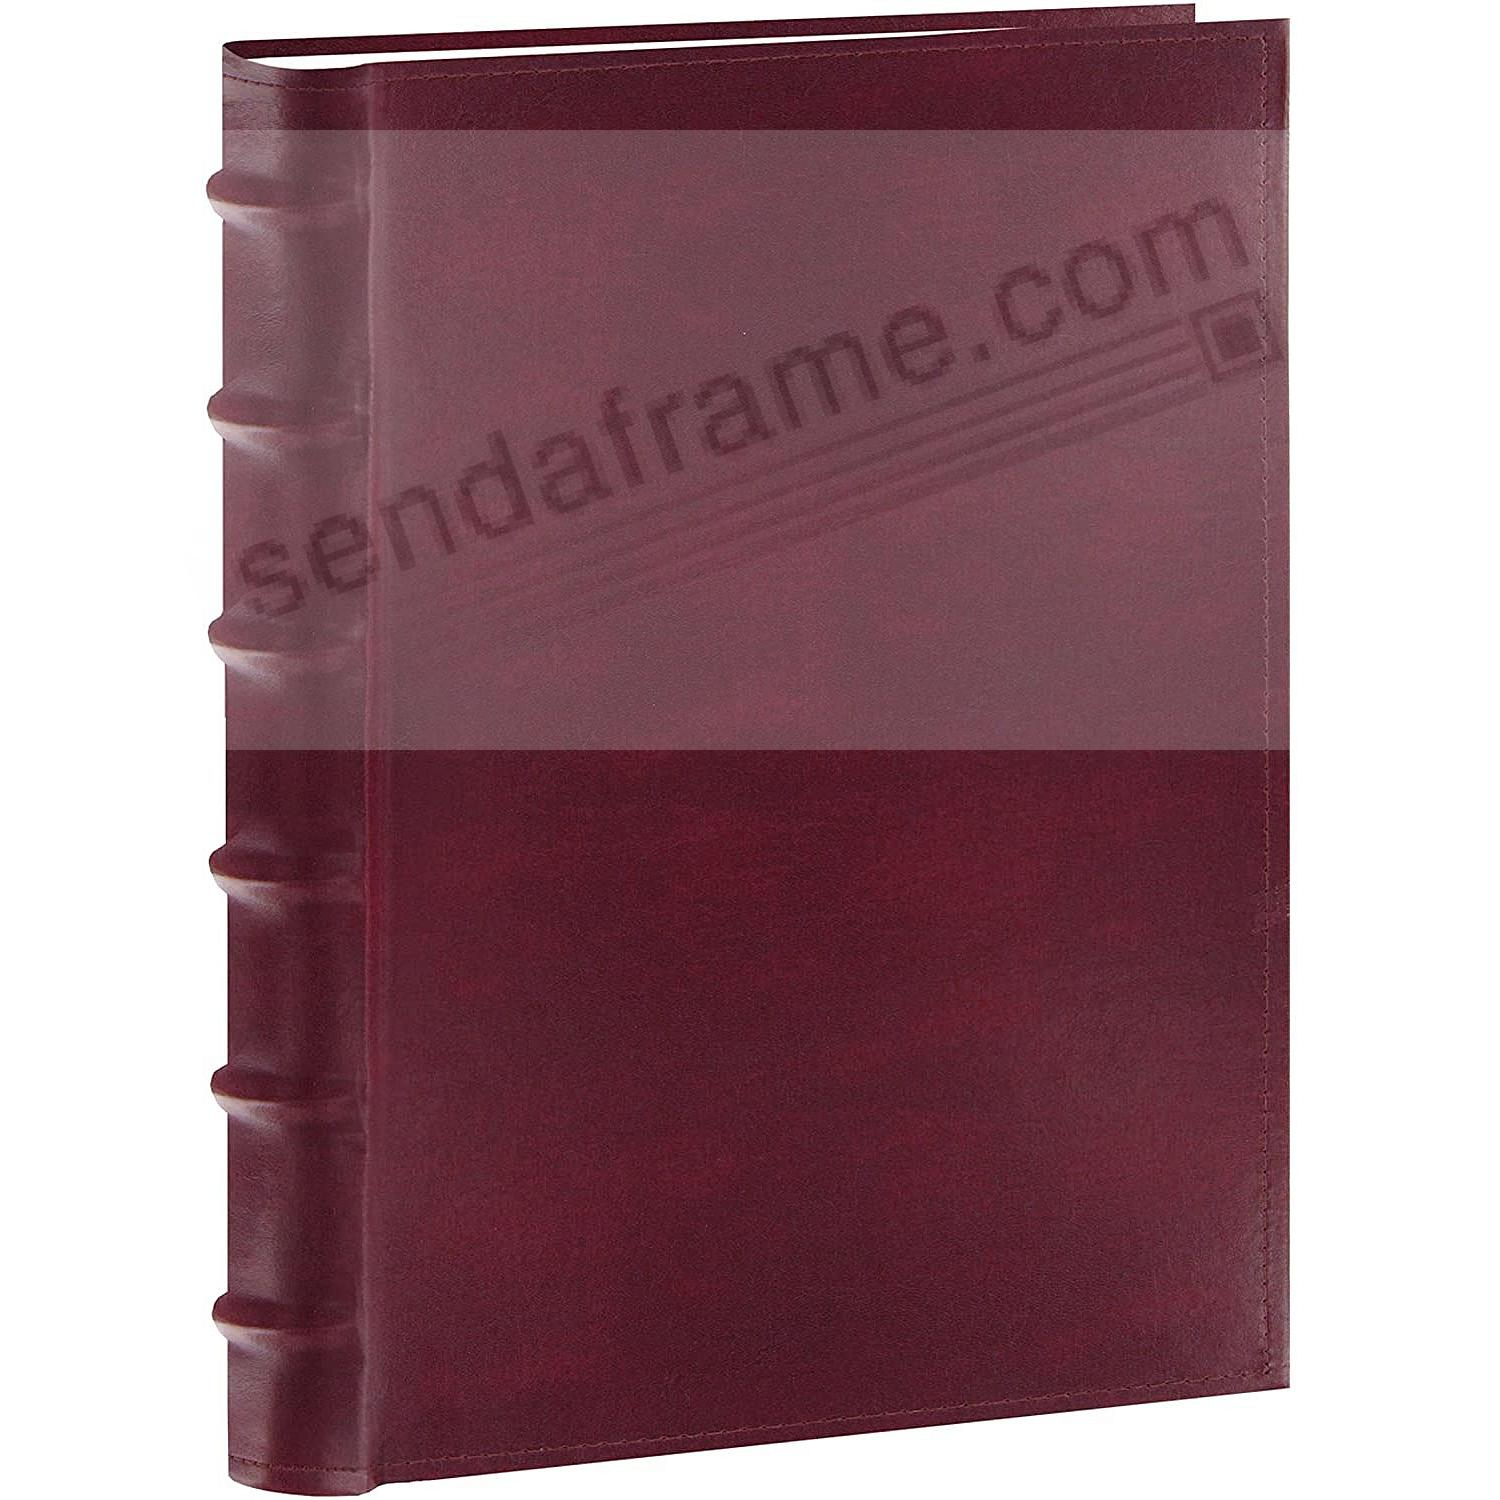 Burgundy Leather BI-DIRECTIONAL 300 capacity slide-in pocket albums with Memo